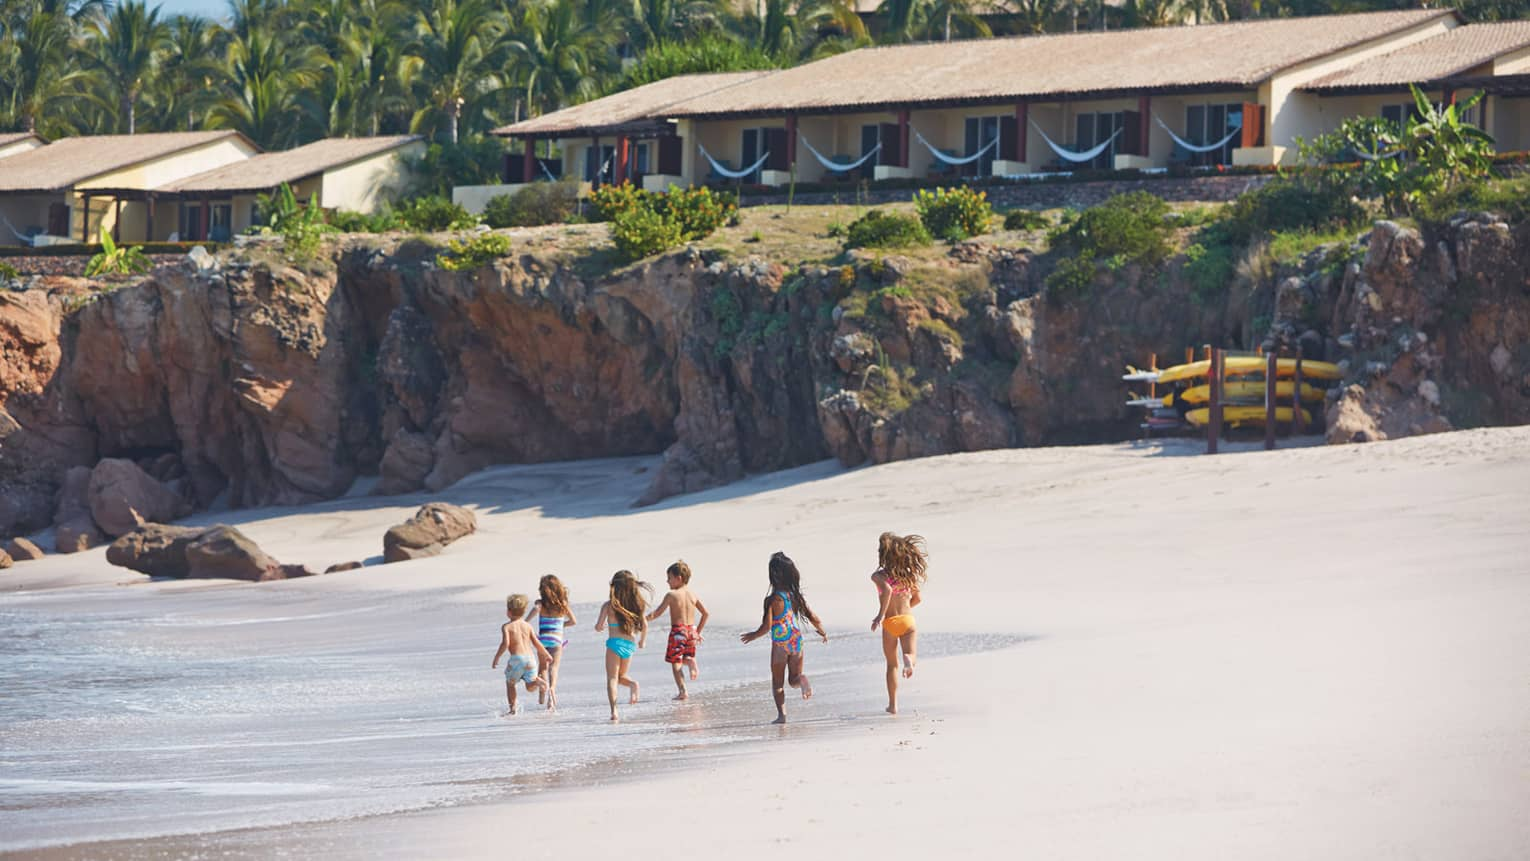 Six young children in swimsuits run on white sand beach near water, resort casitas on cliffs above